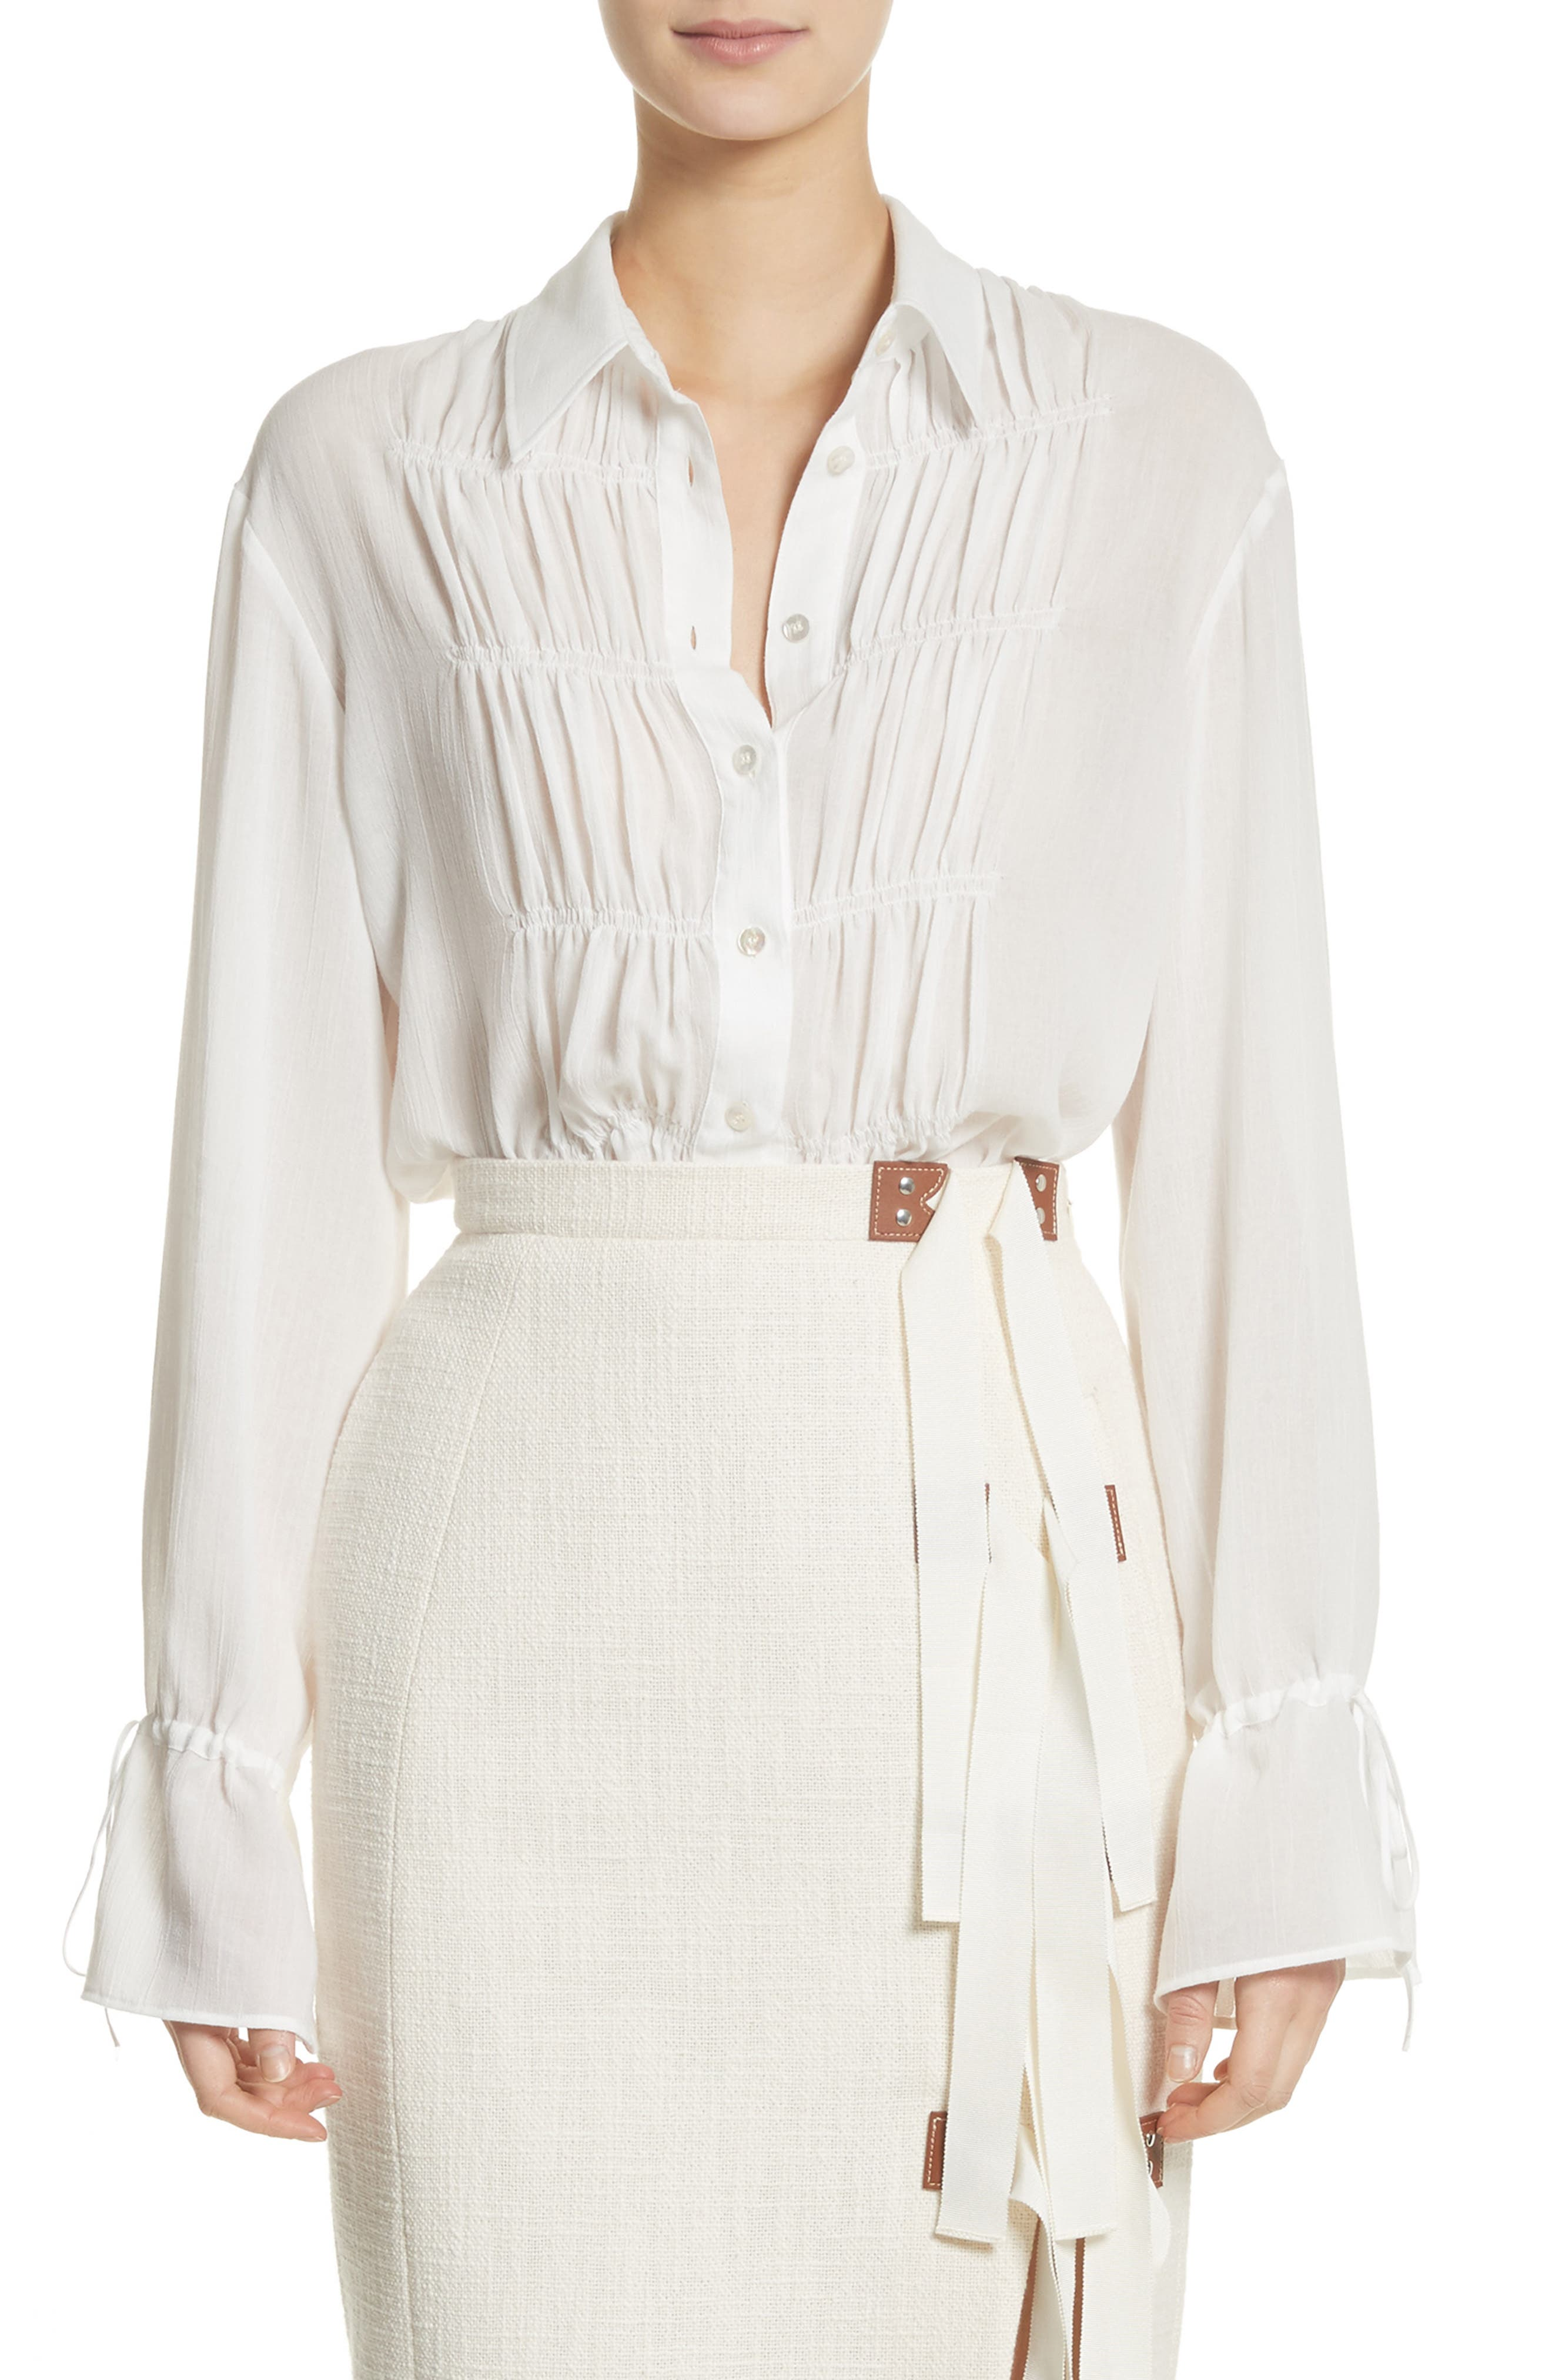 Ruched Detail Blouse,                             Main thumbnail 1, color,                             Optic White